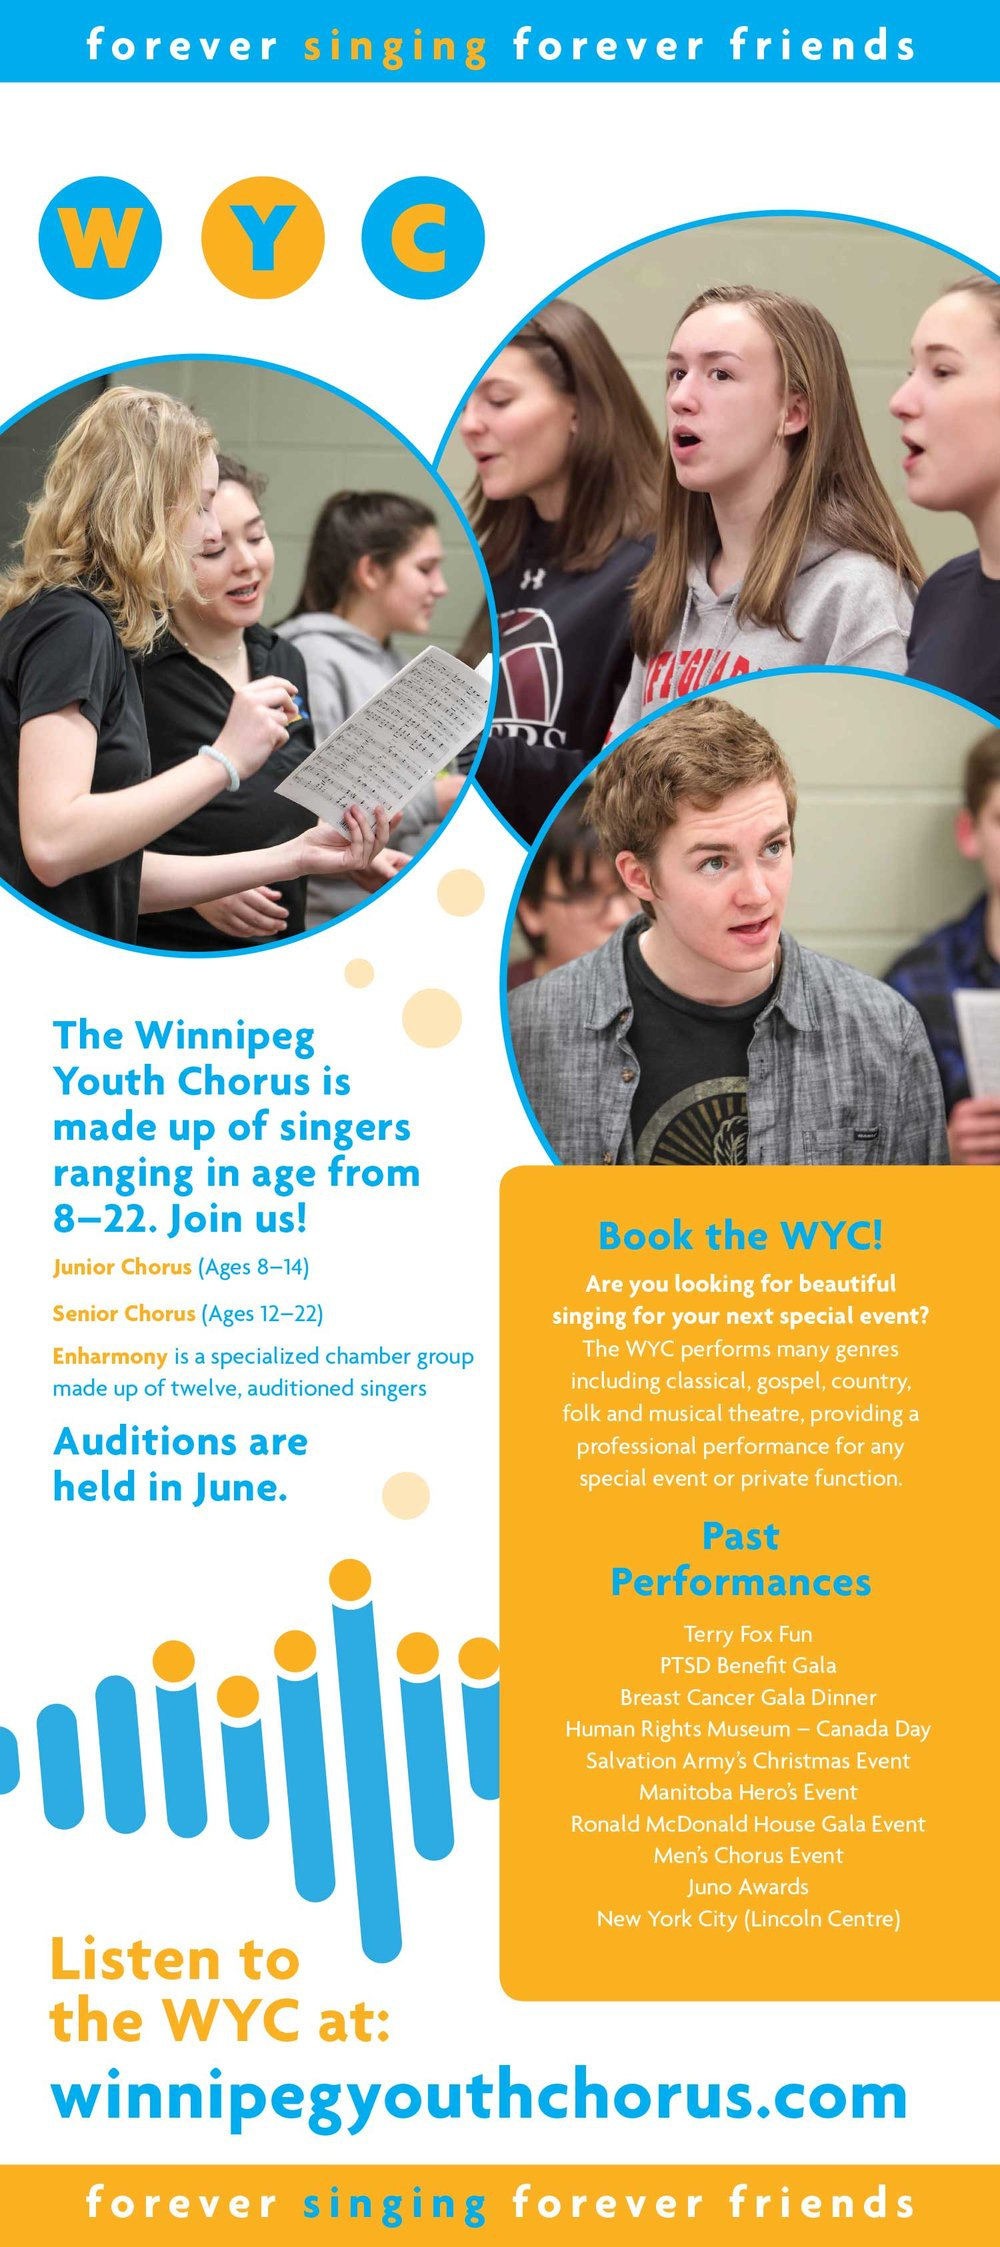 winnipeg-youth-chorus-marketing-material-design-aniko-szabo-4.jpg